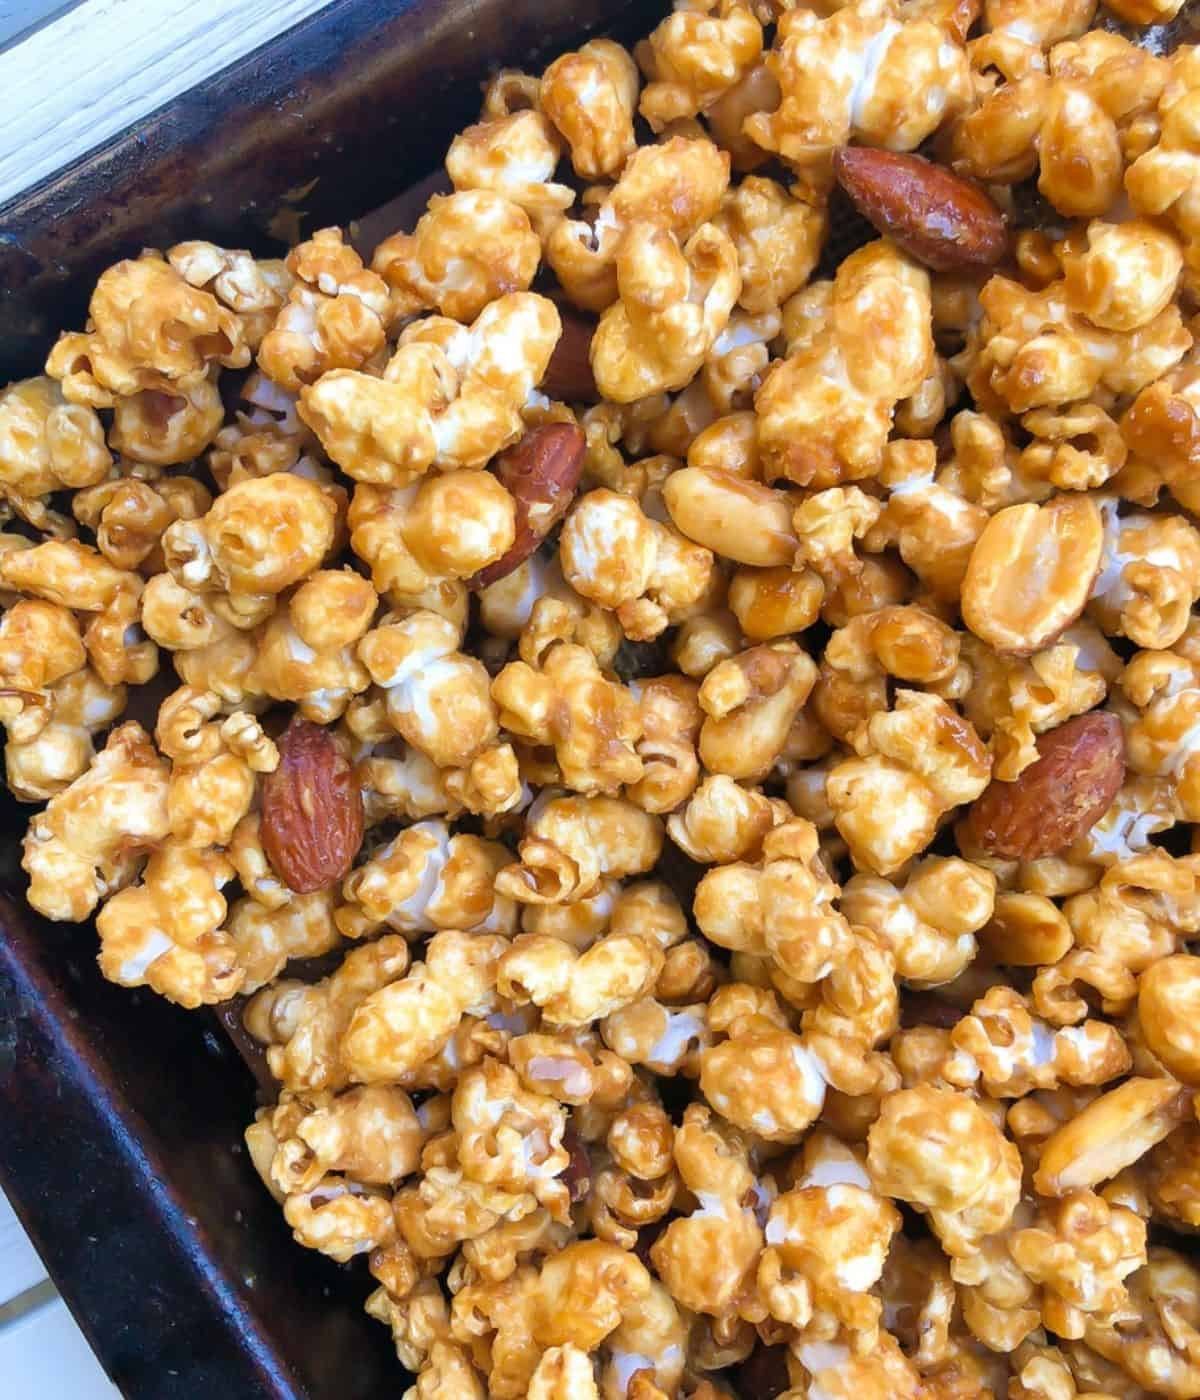 Closeup of caramel popcorn with peanuts and almonds on a baking sheet.